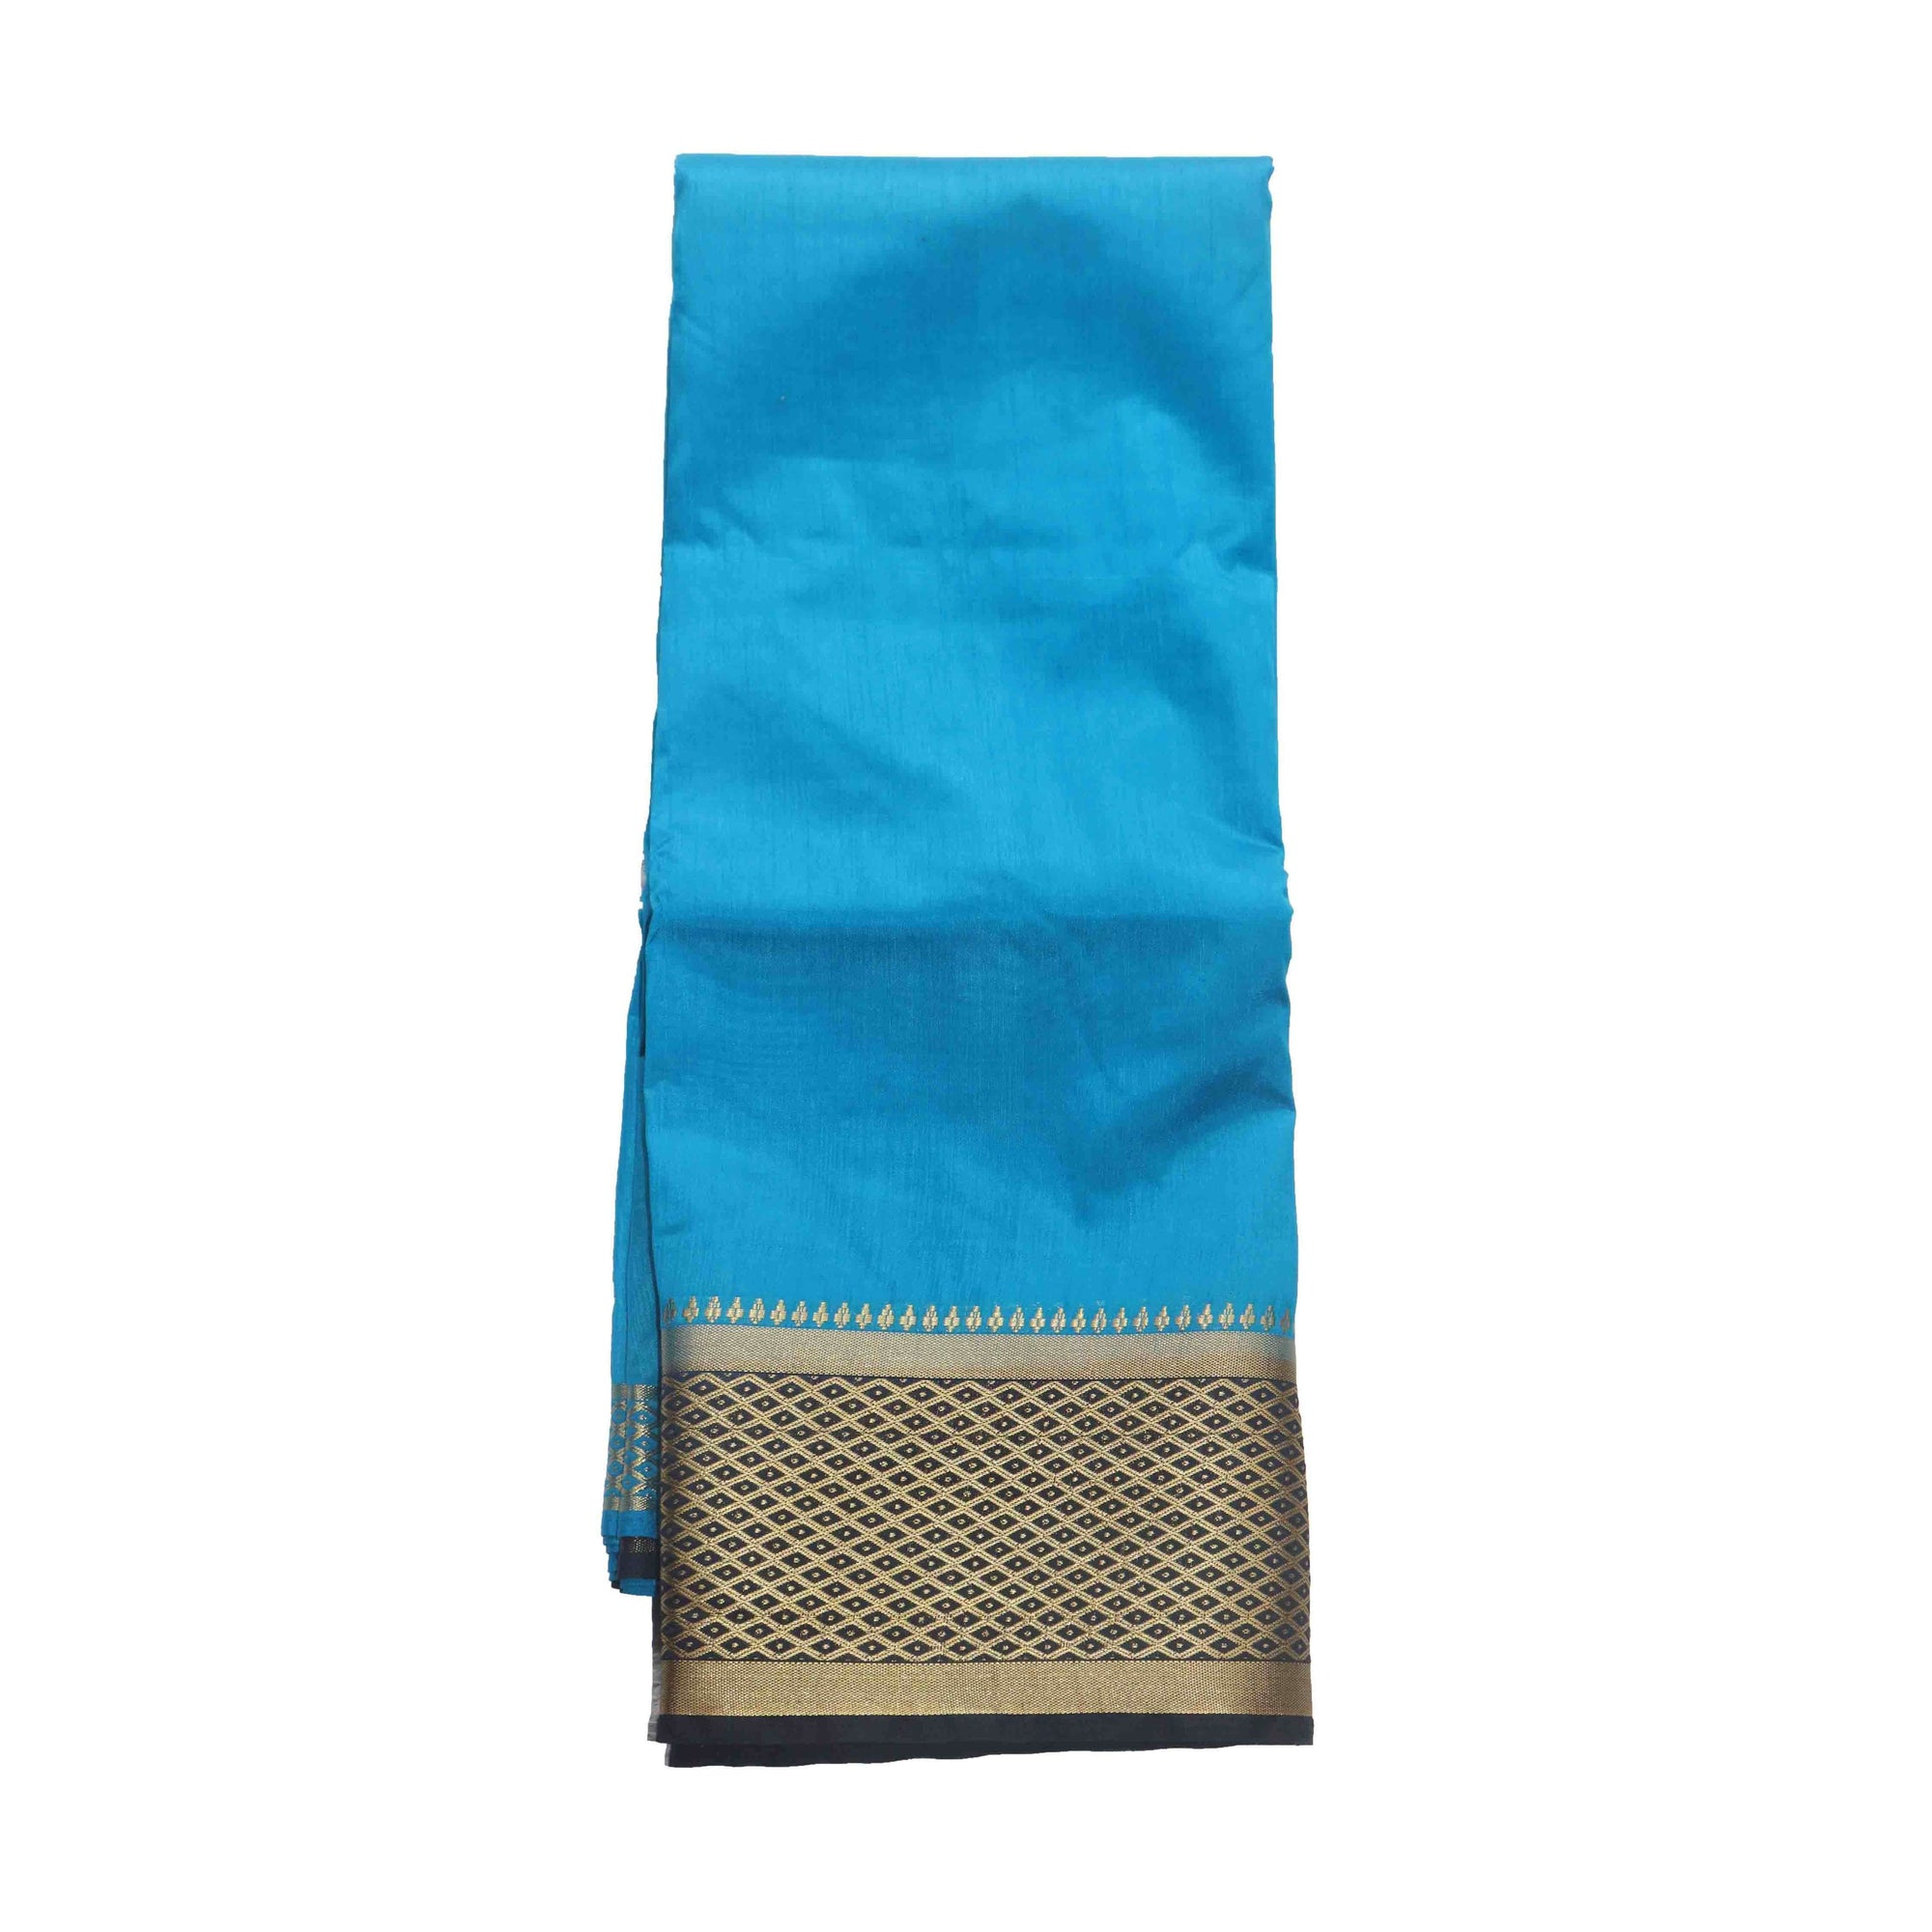 Arars Women's Kanchipuram Kanjivaram Pattu Style Raw Plain Silk Saree With Blouse (463 BLUE NAVY )